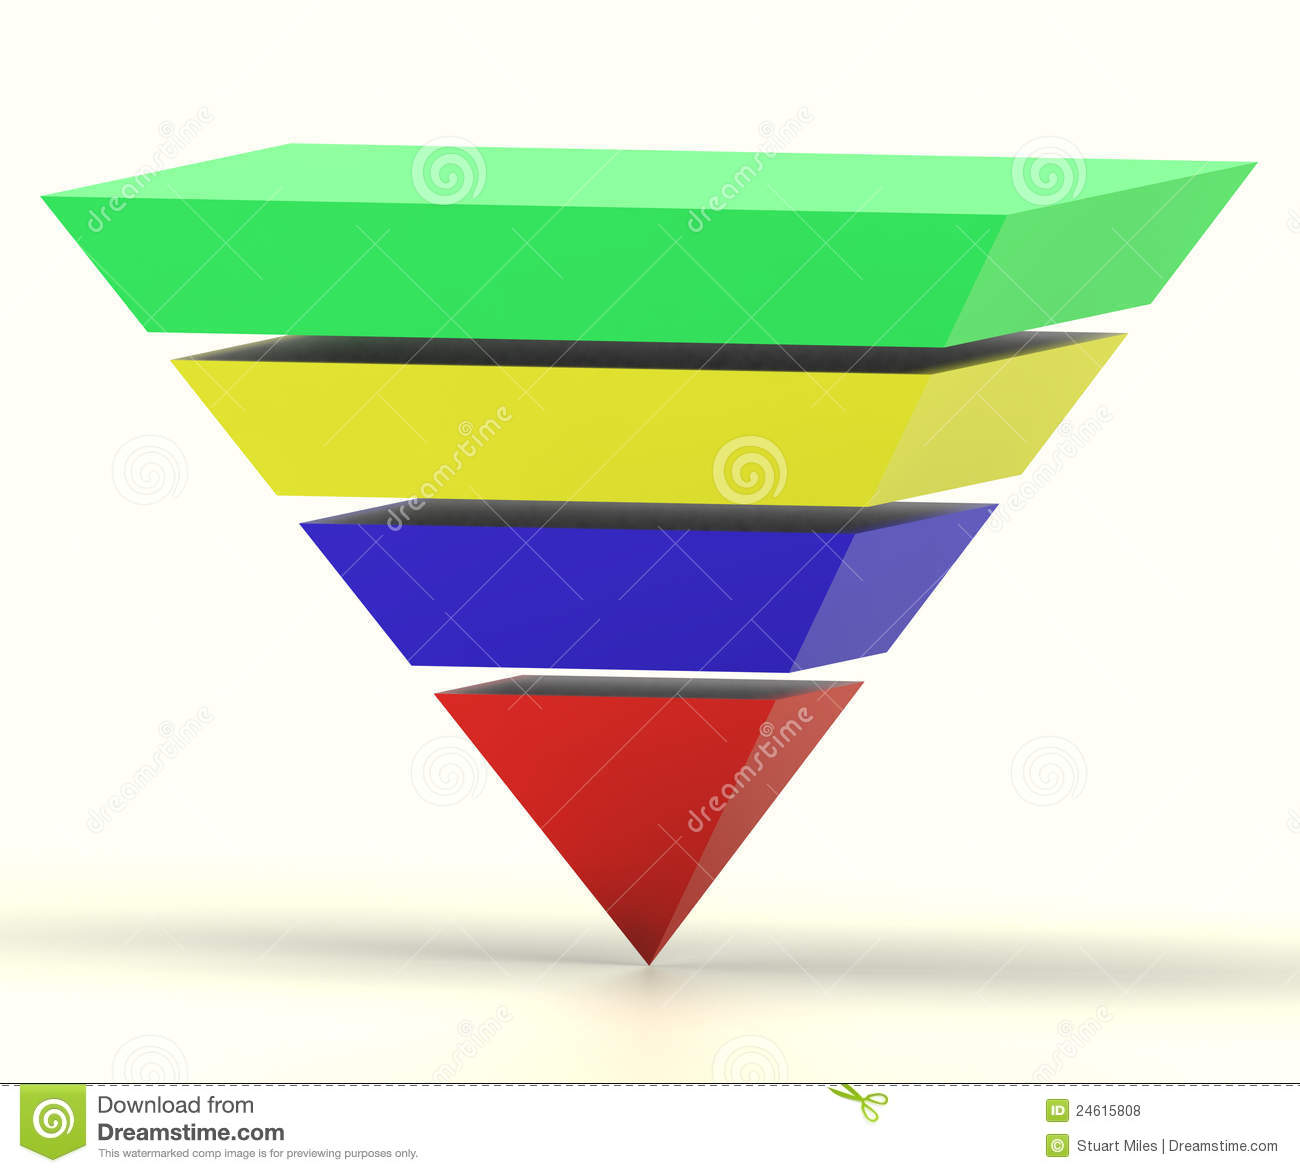 Inverted Pyramid With Segments Shows Hierarchy Royalty Free Stock ...